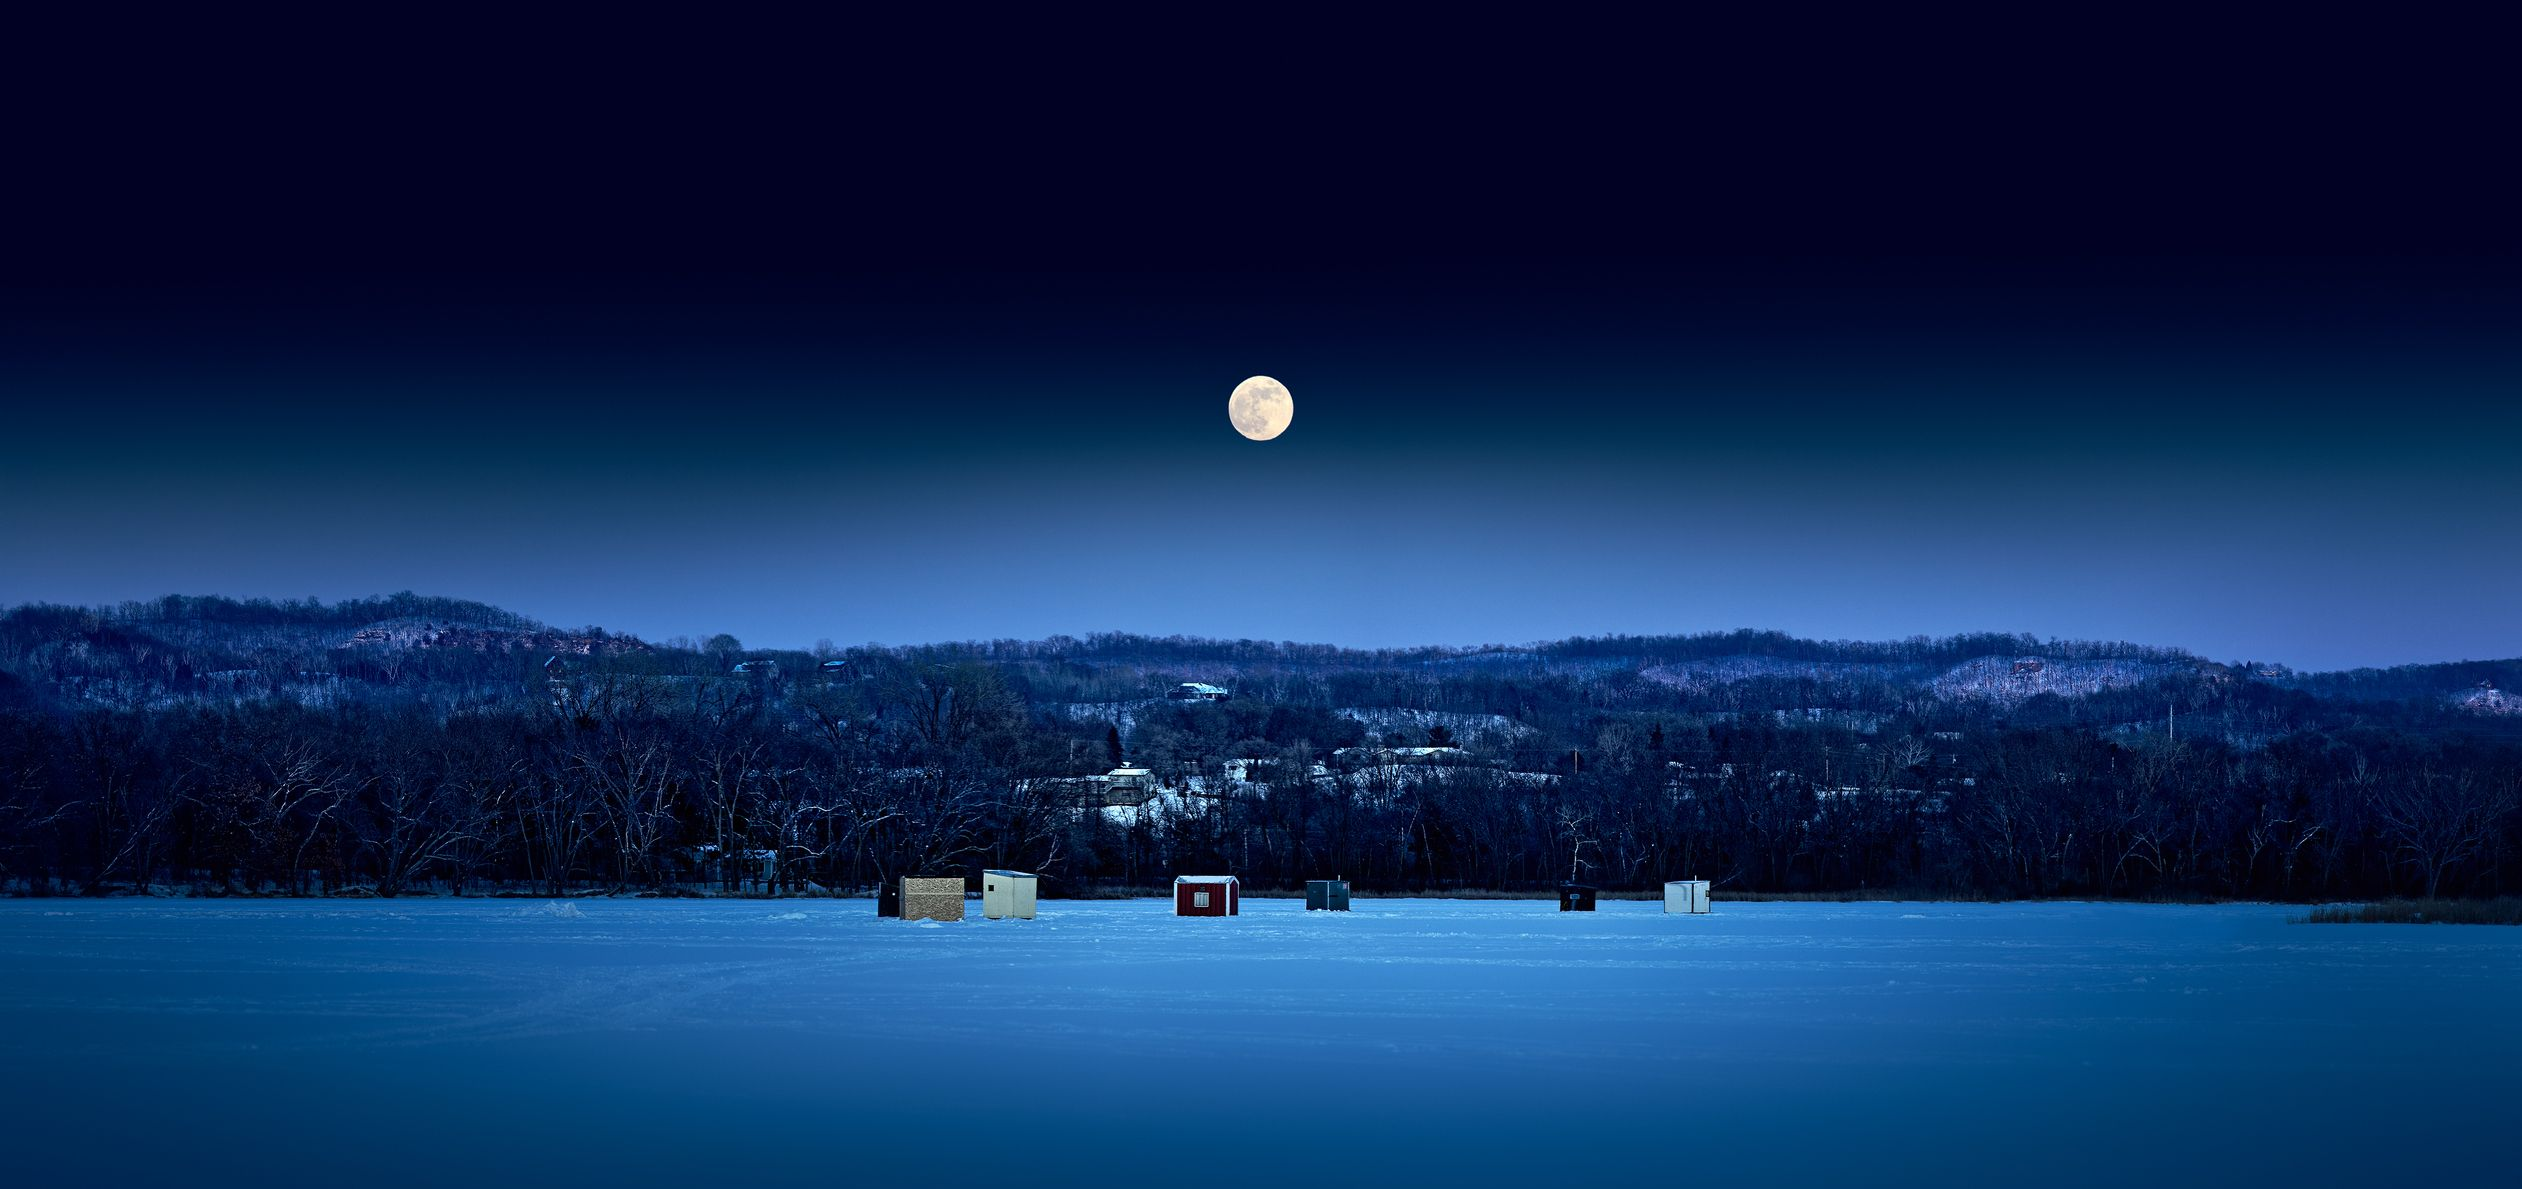 The Super Snow Moon Is Basically The Marie Kondo Of Full Moons So Prepare Accordingly Night Skies Winter Wallpaper Winter Landscape